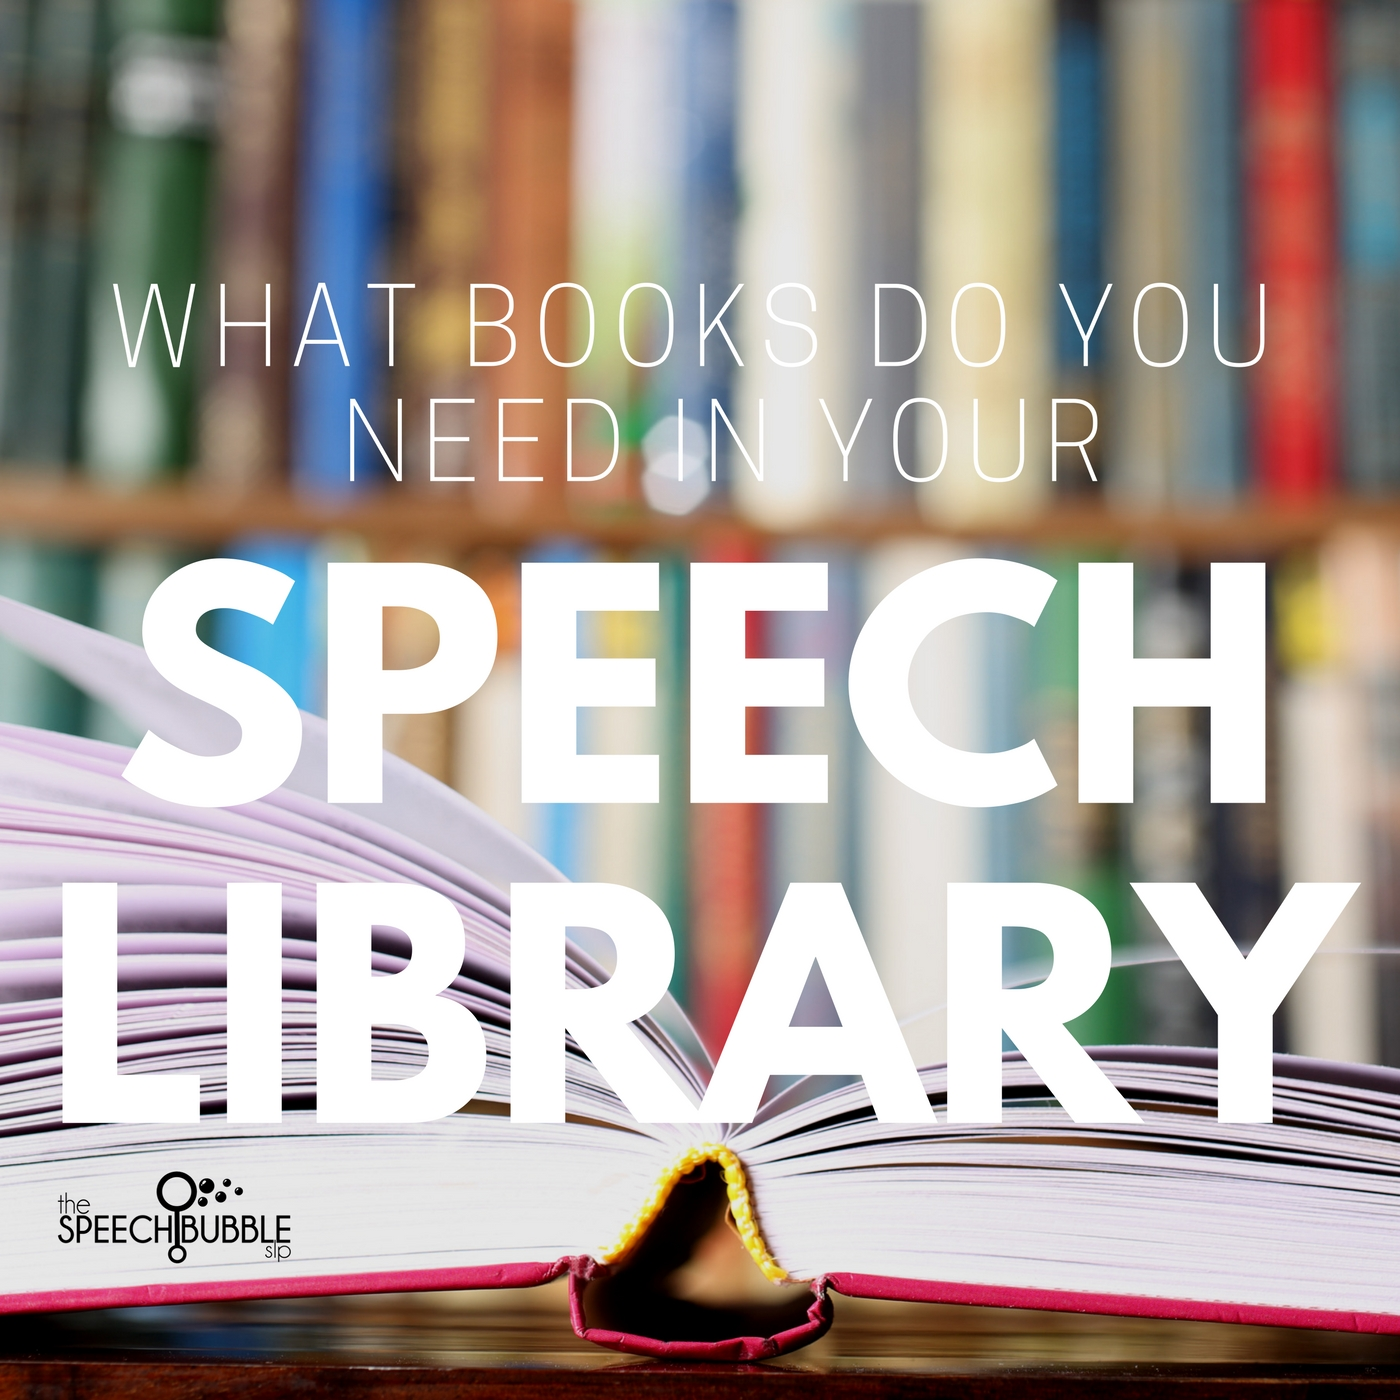 What Books Do You Need in Your Speech Library